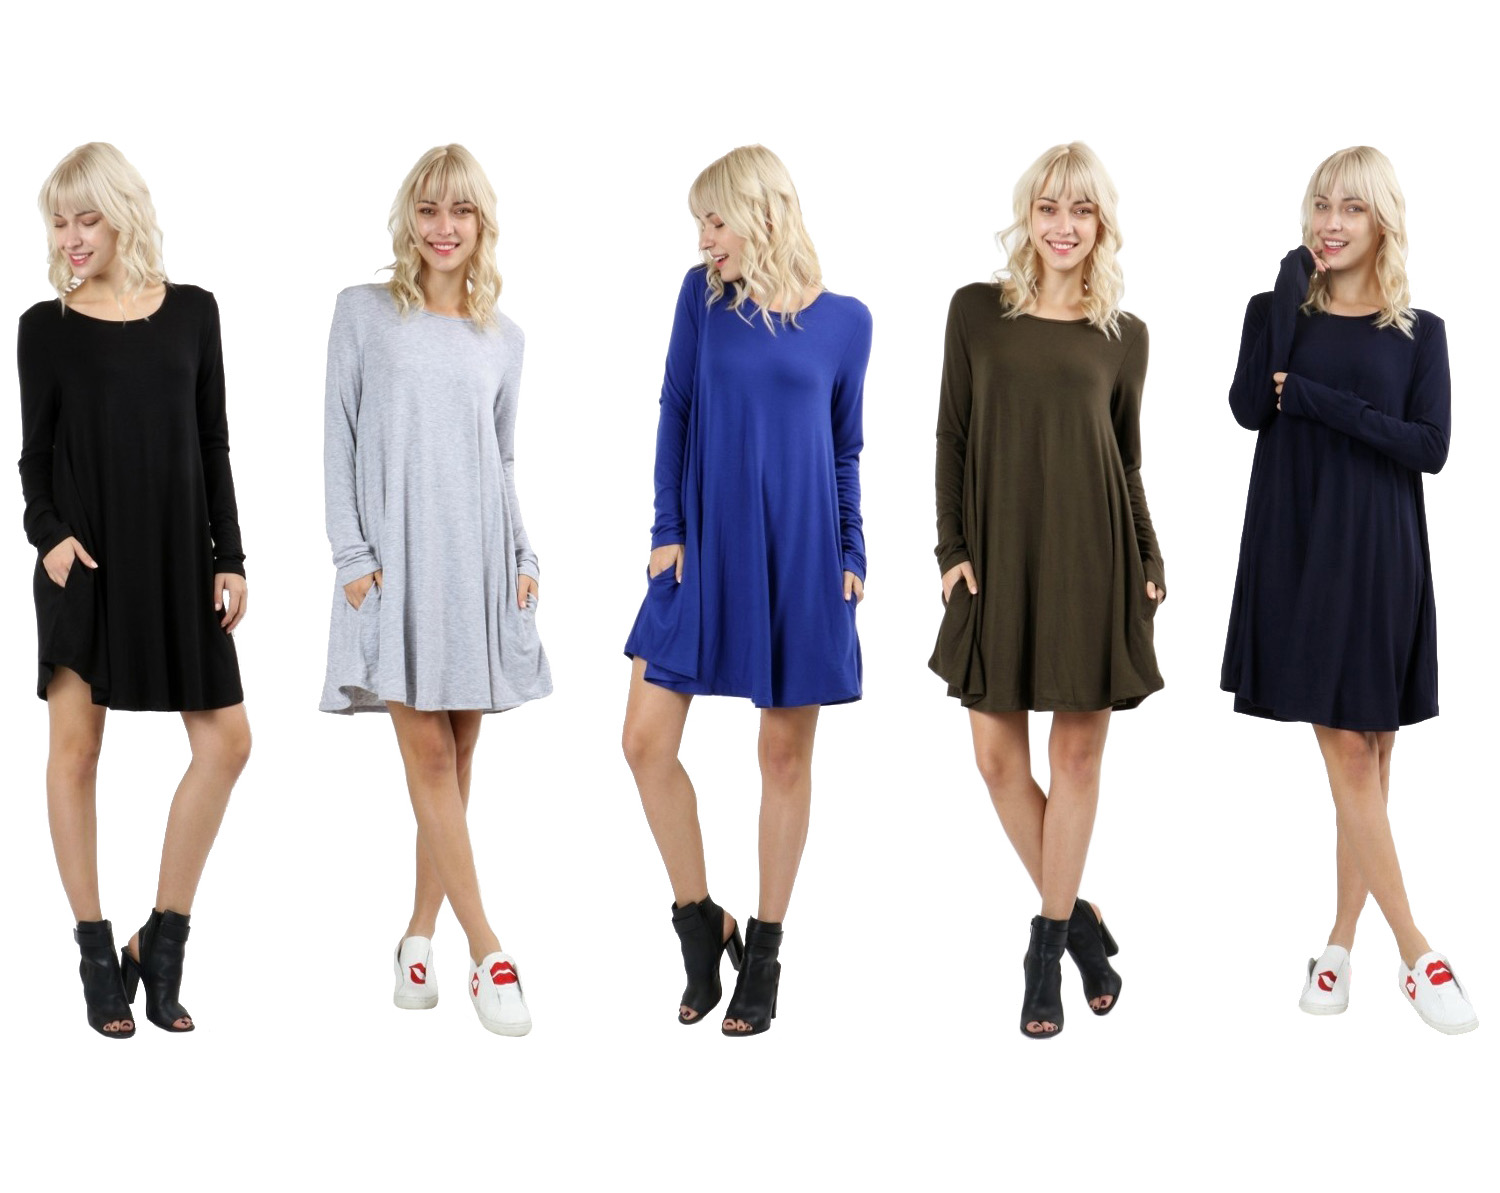 RS9921P-Women-039-s-Long-Sleeve-Flare-Hem-Loose-Fit-Round-Neck-Dress-Tunic-Top thumbnail 10